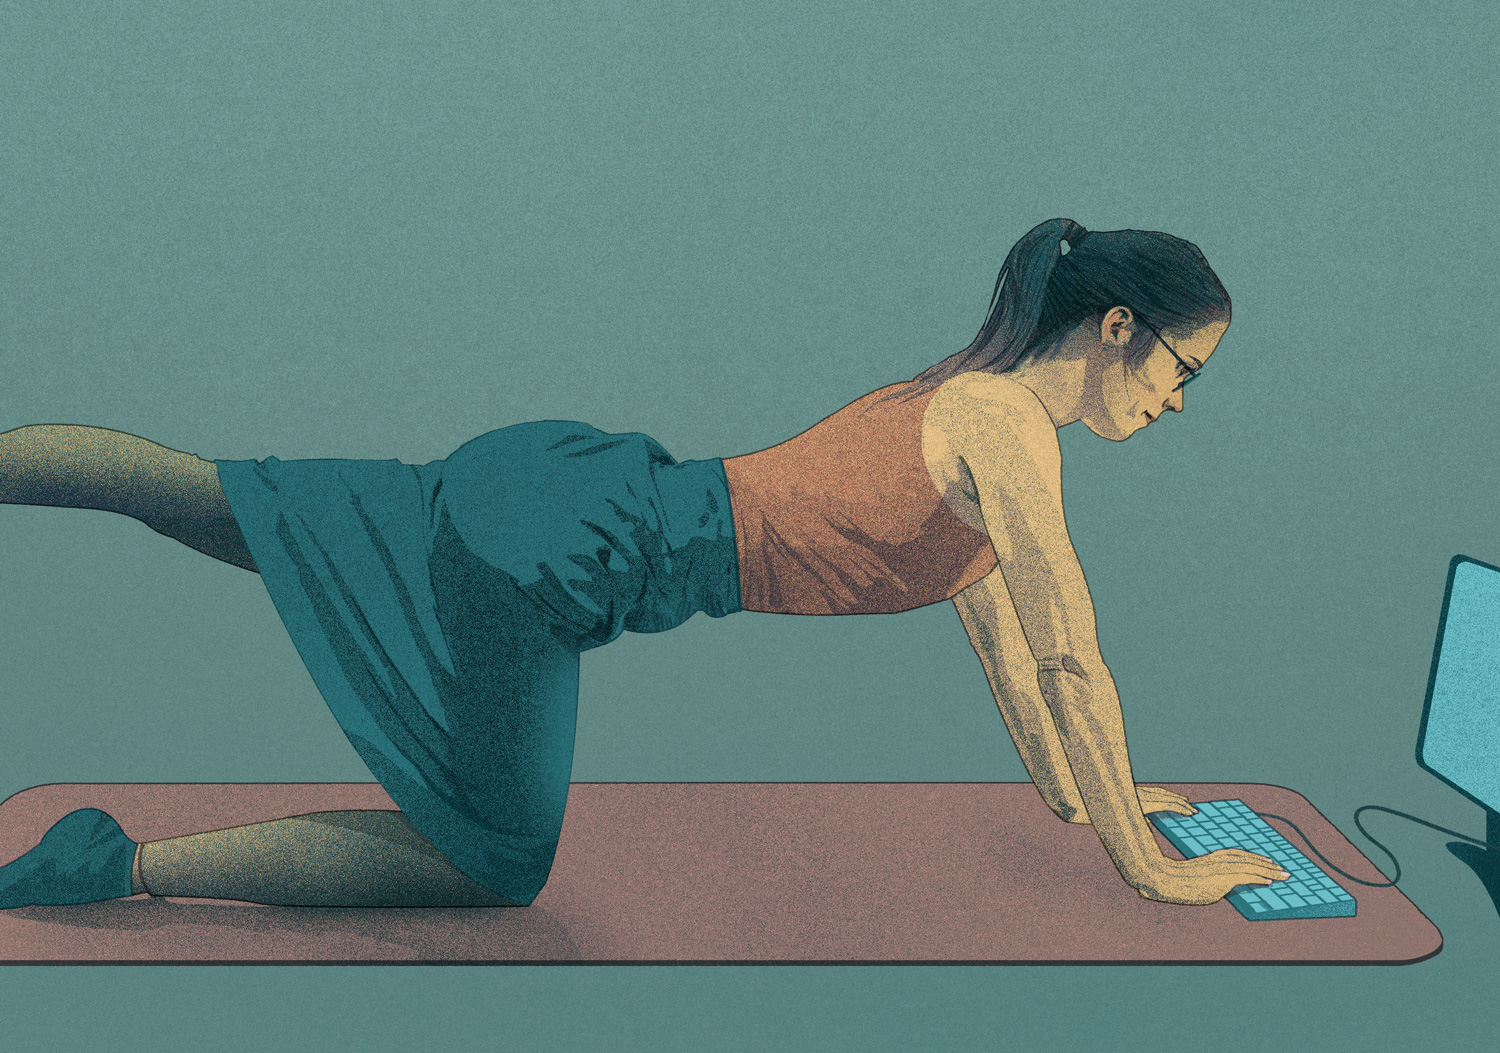 HOW TO STAY FIT AND HEALTHY AT WORK   Self initiated, unpublished illustration